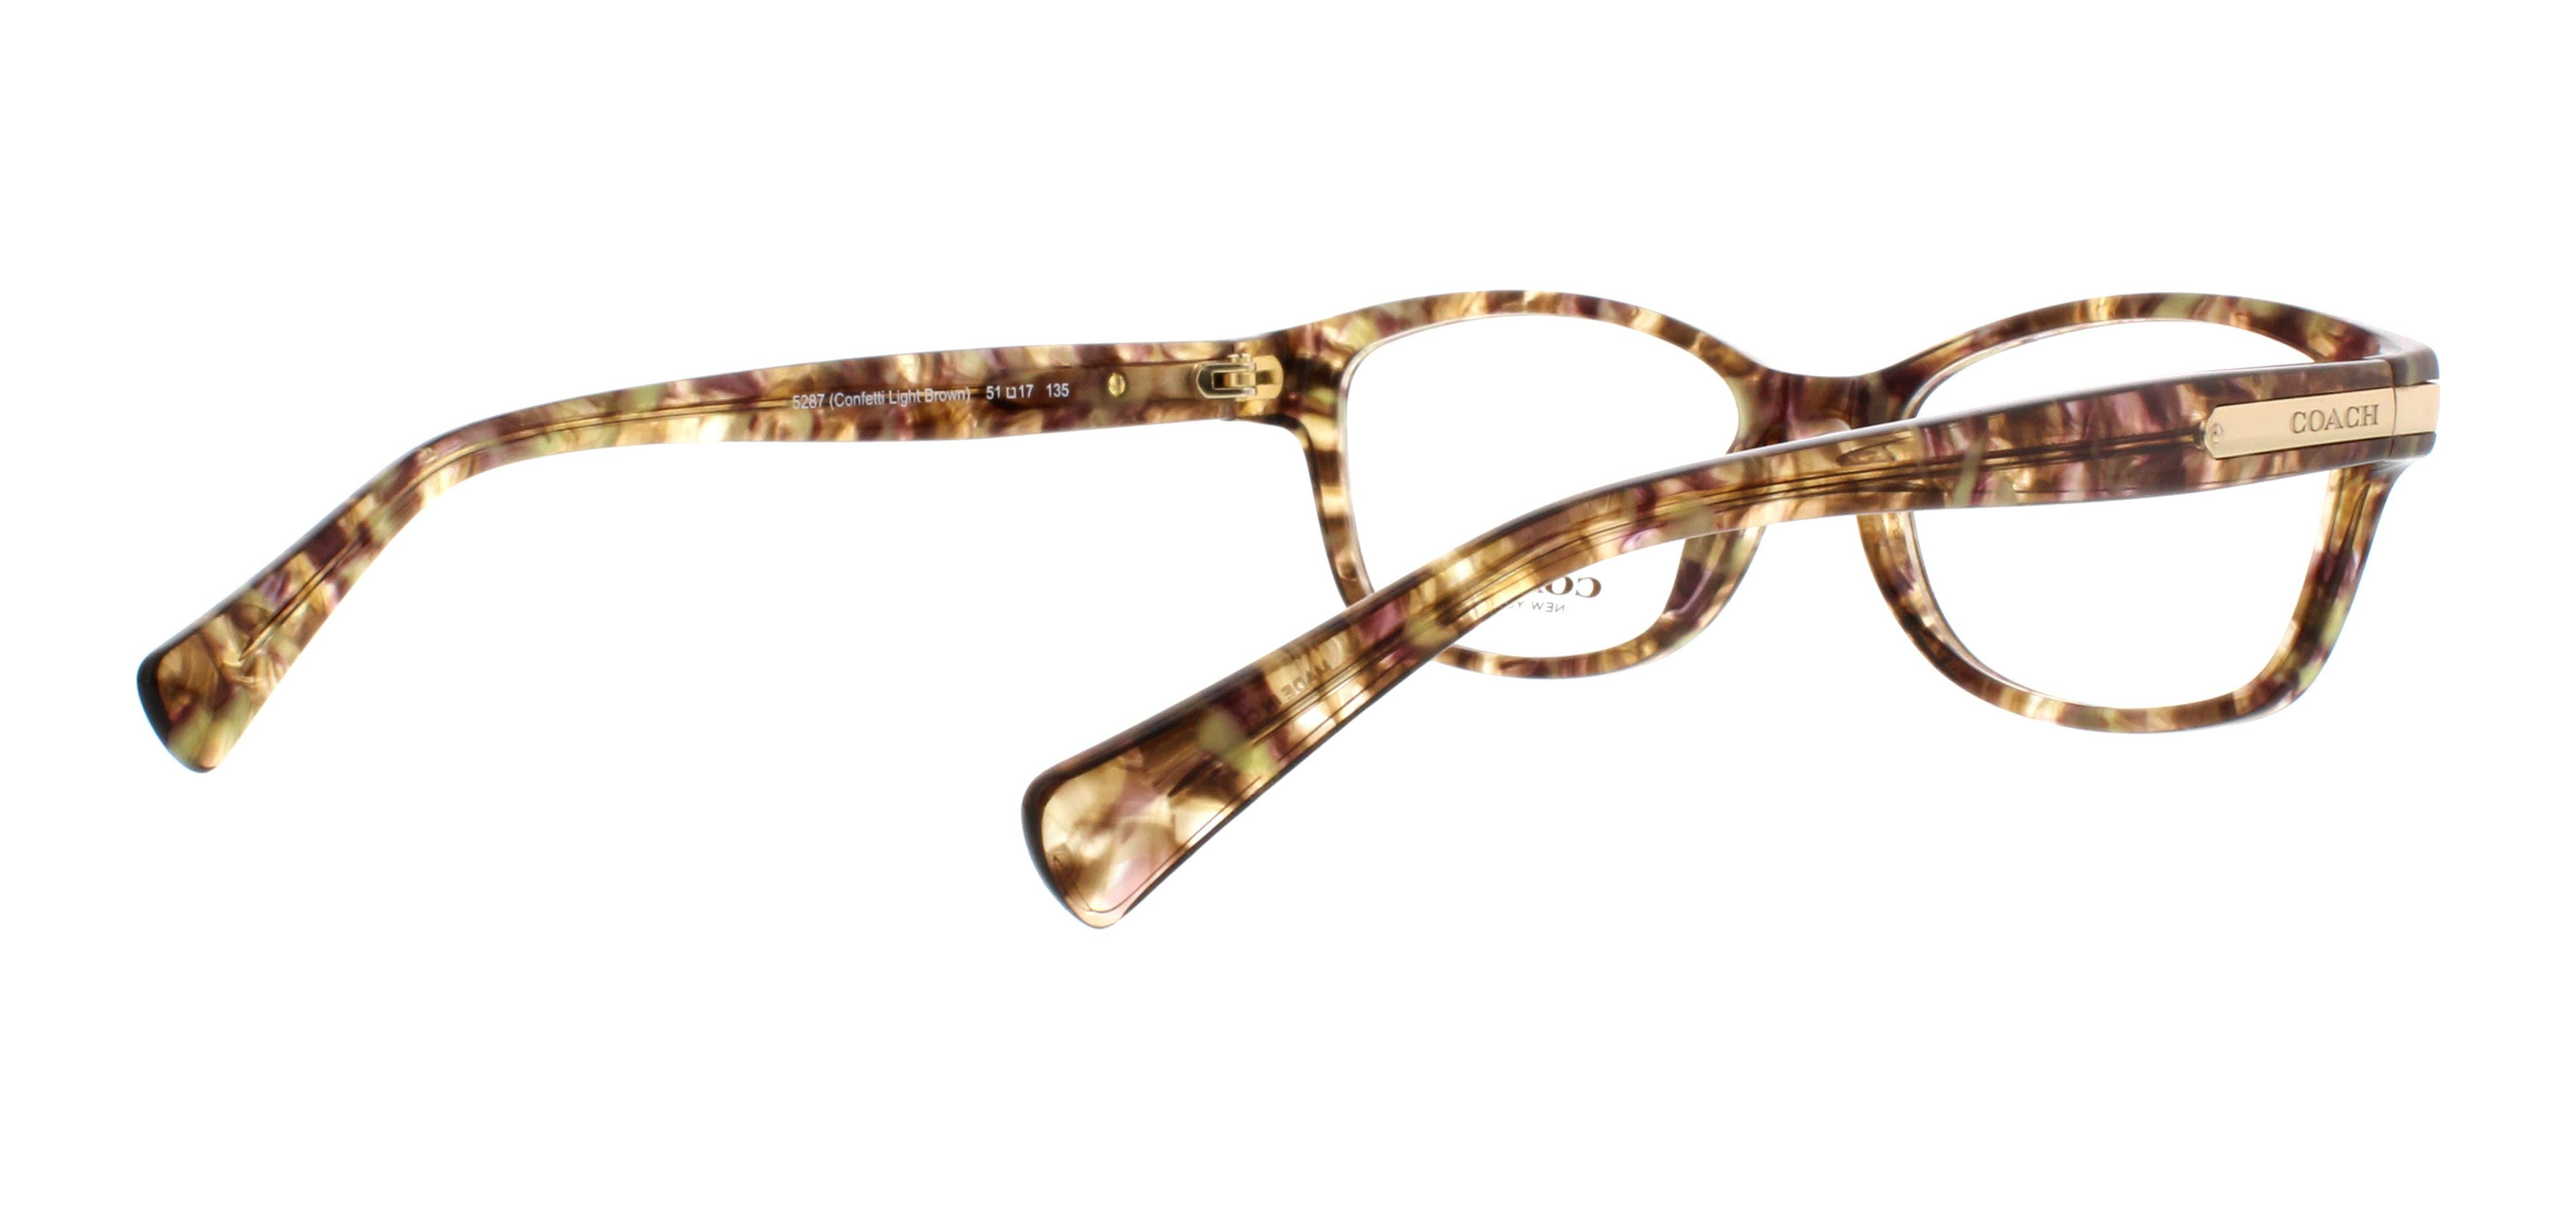 COACH Eyeglasses HC6065 5287 Confetti Light Brown 51MM - Walmart.com